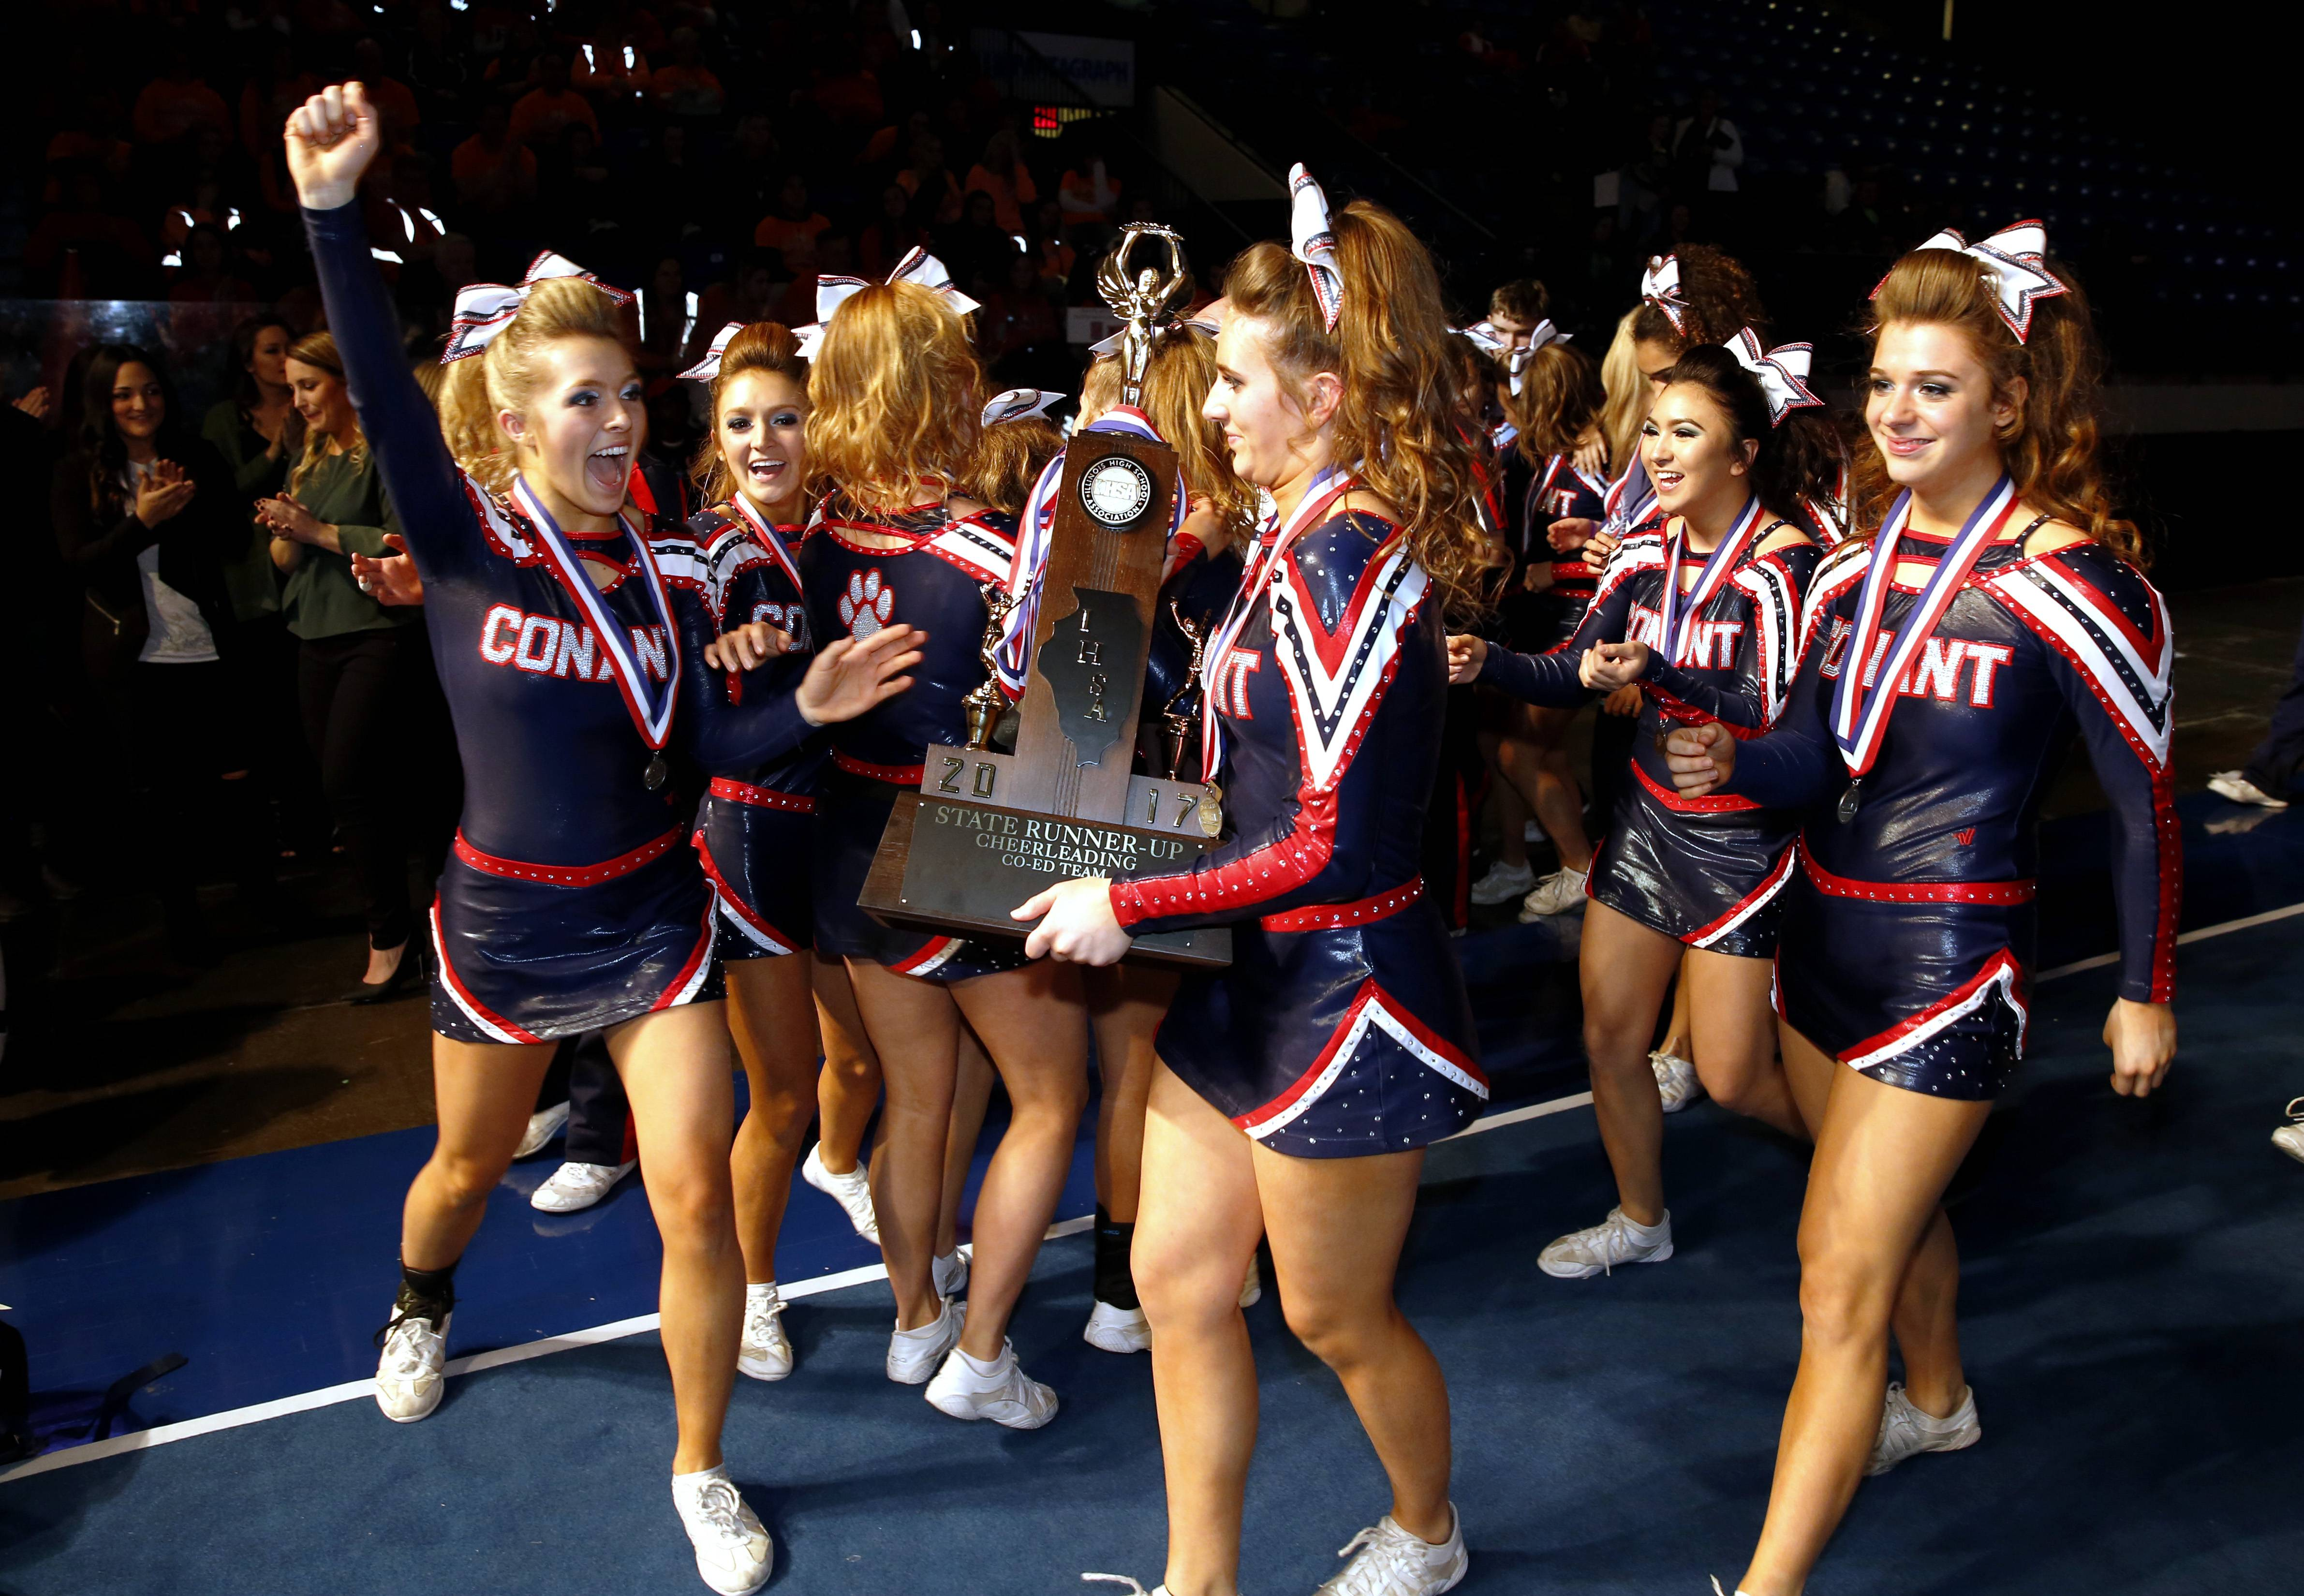 """To walk away with second place is a dream come true,"" Conant coach Amanda Schweinebraten said of her squad's performance. Here, the team celebrates with the trophy."